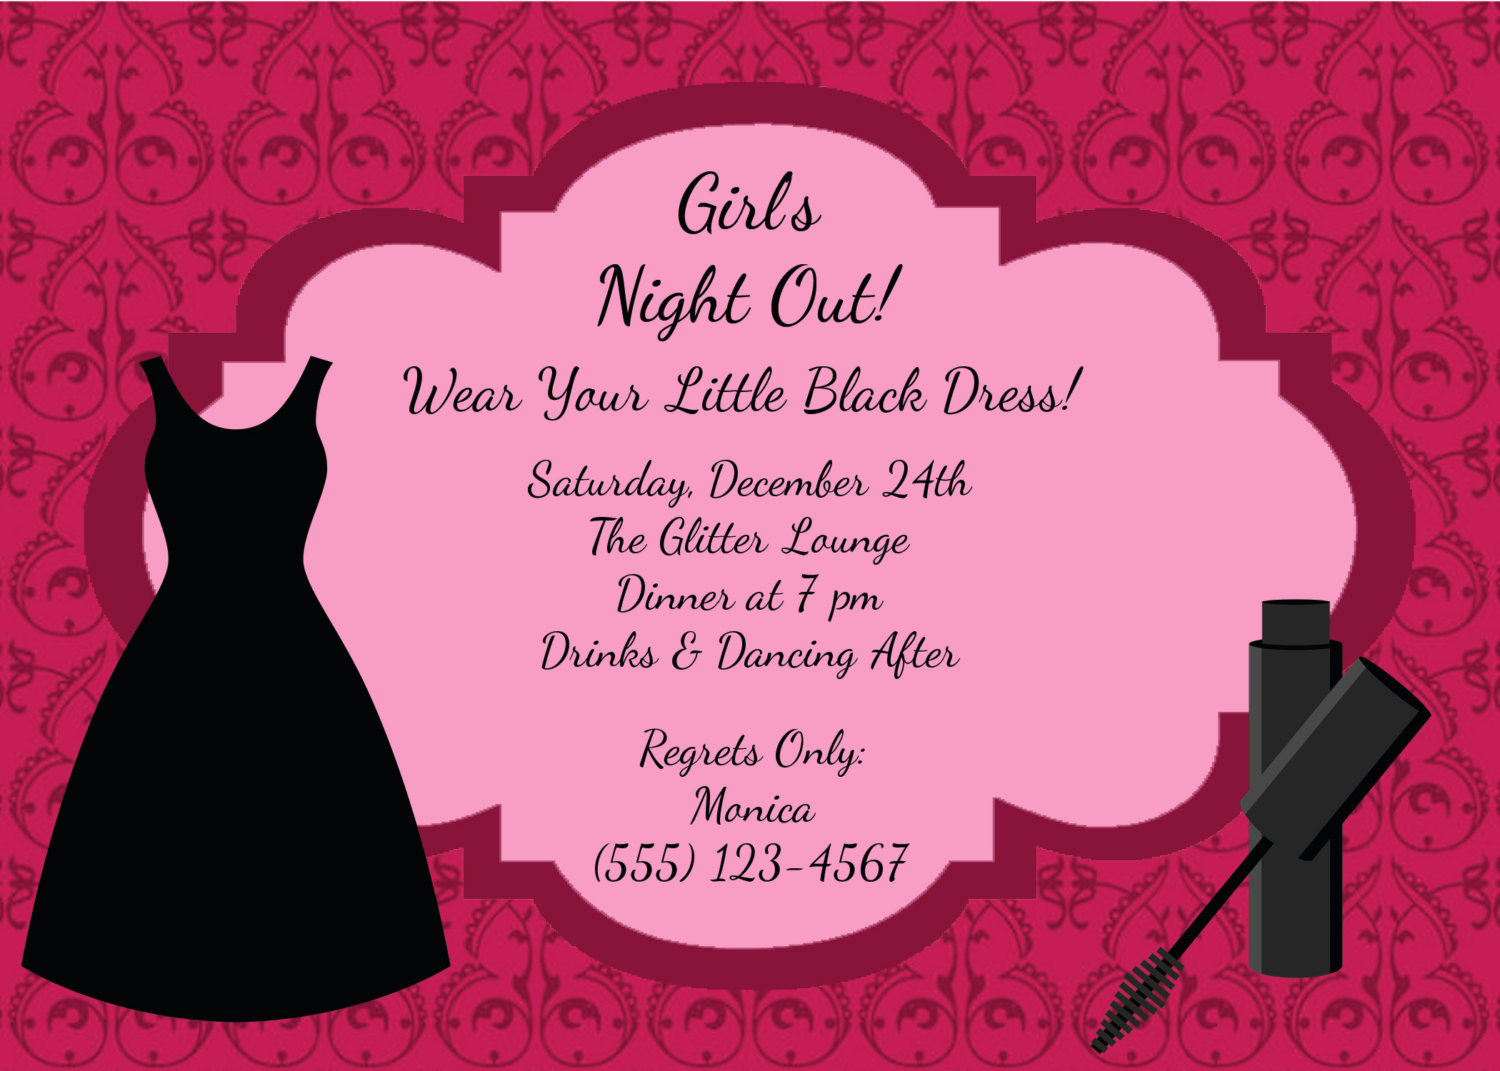 Ladies Night Invitation Wording New Girls Night Out Invitation Great for Bachelorette Party Diy